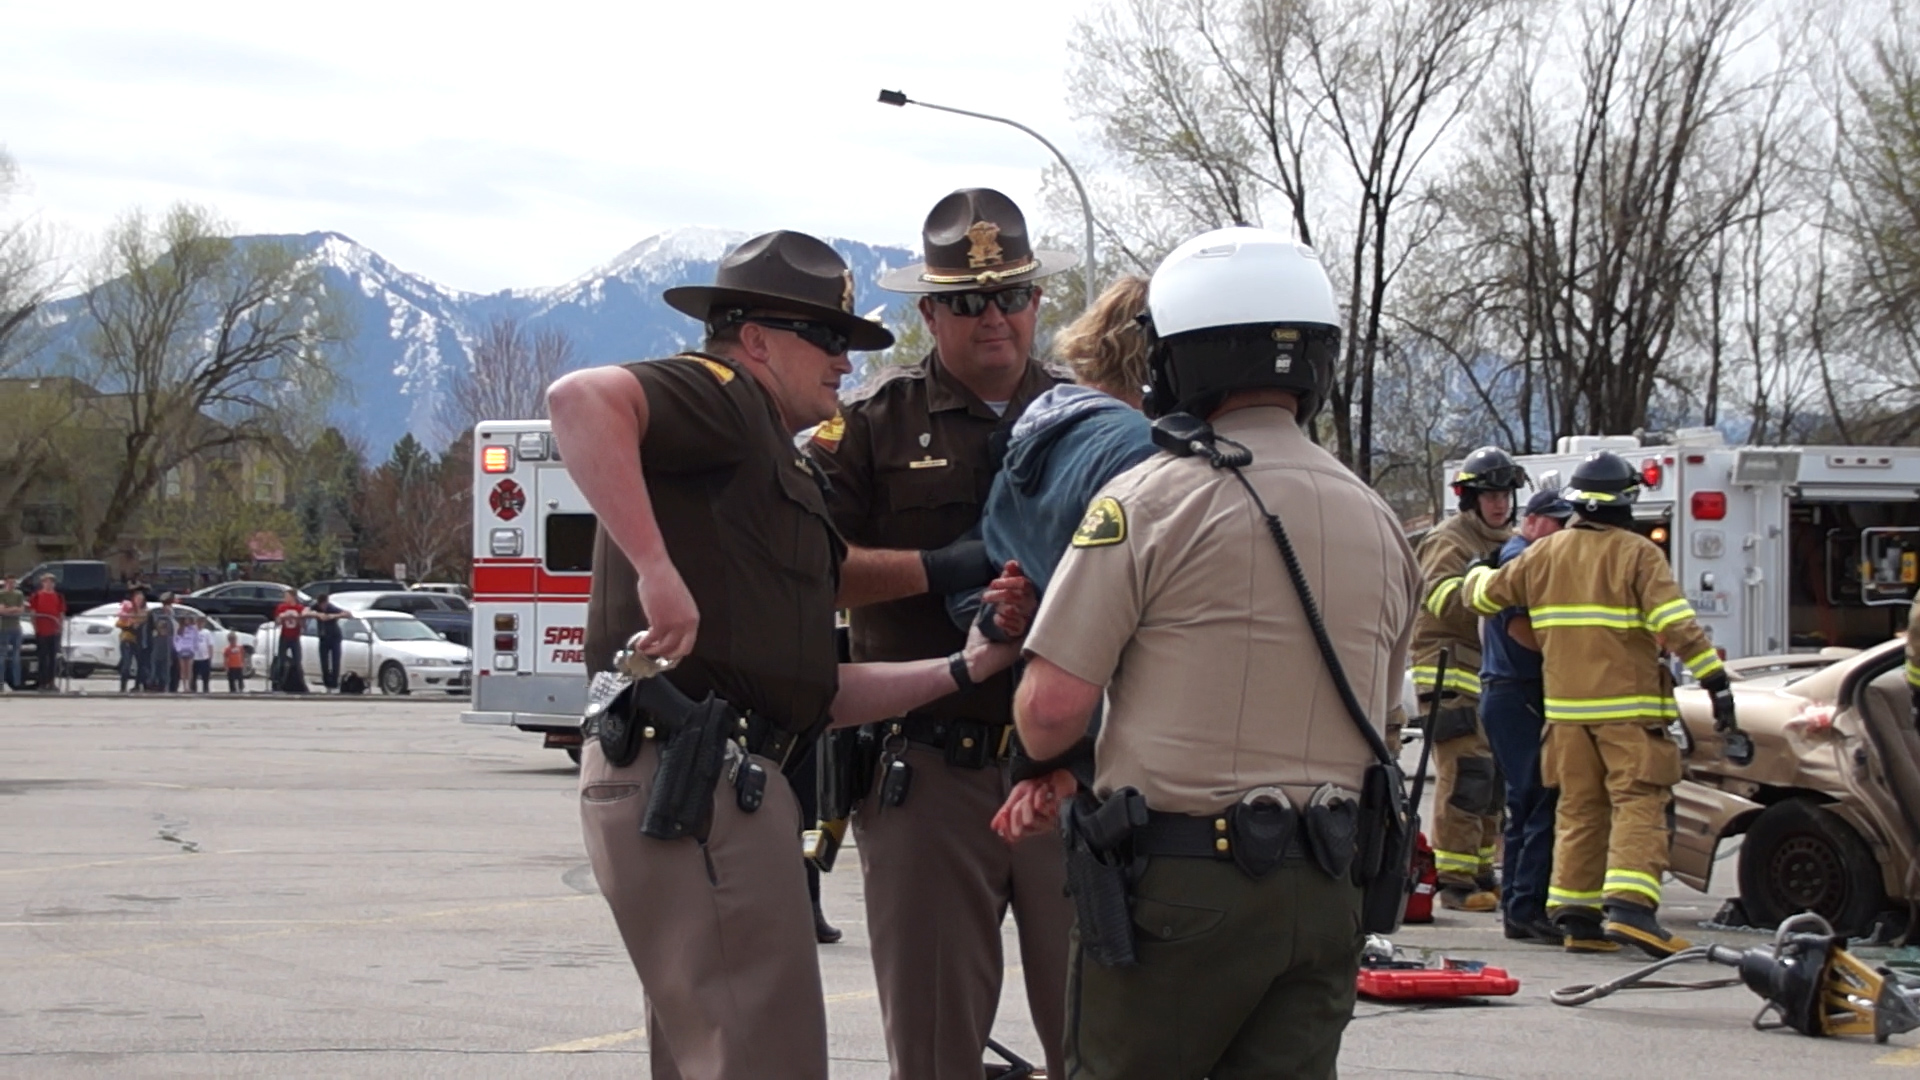 Troopers and Utah County SO Deputy arrest mock crash drunk driver. UHP, Springville PD, SPringville Fire and Rescue, Utah County Sheriff's Office and Lifeflight teamed up to conduct a mock crash at Springville High School on April 10th.